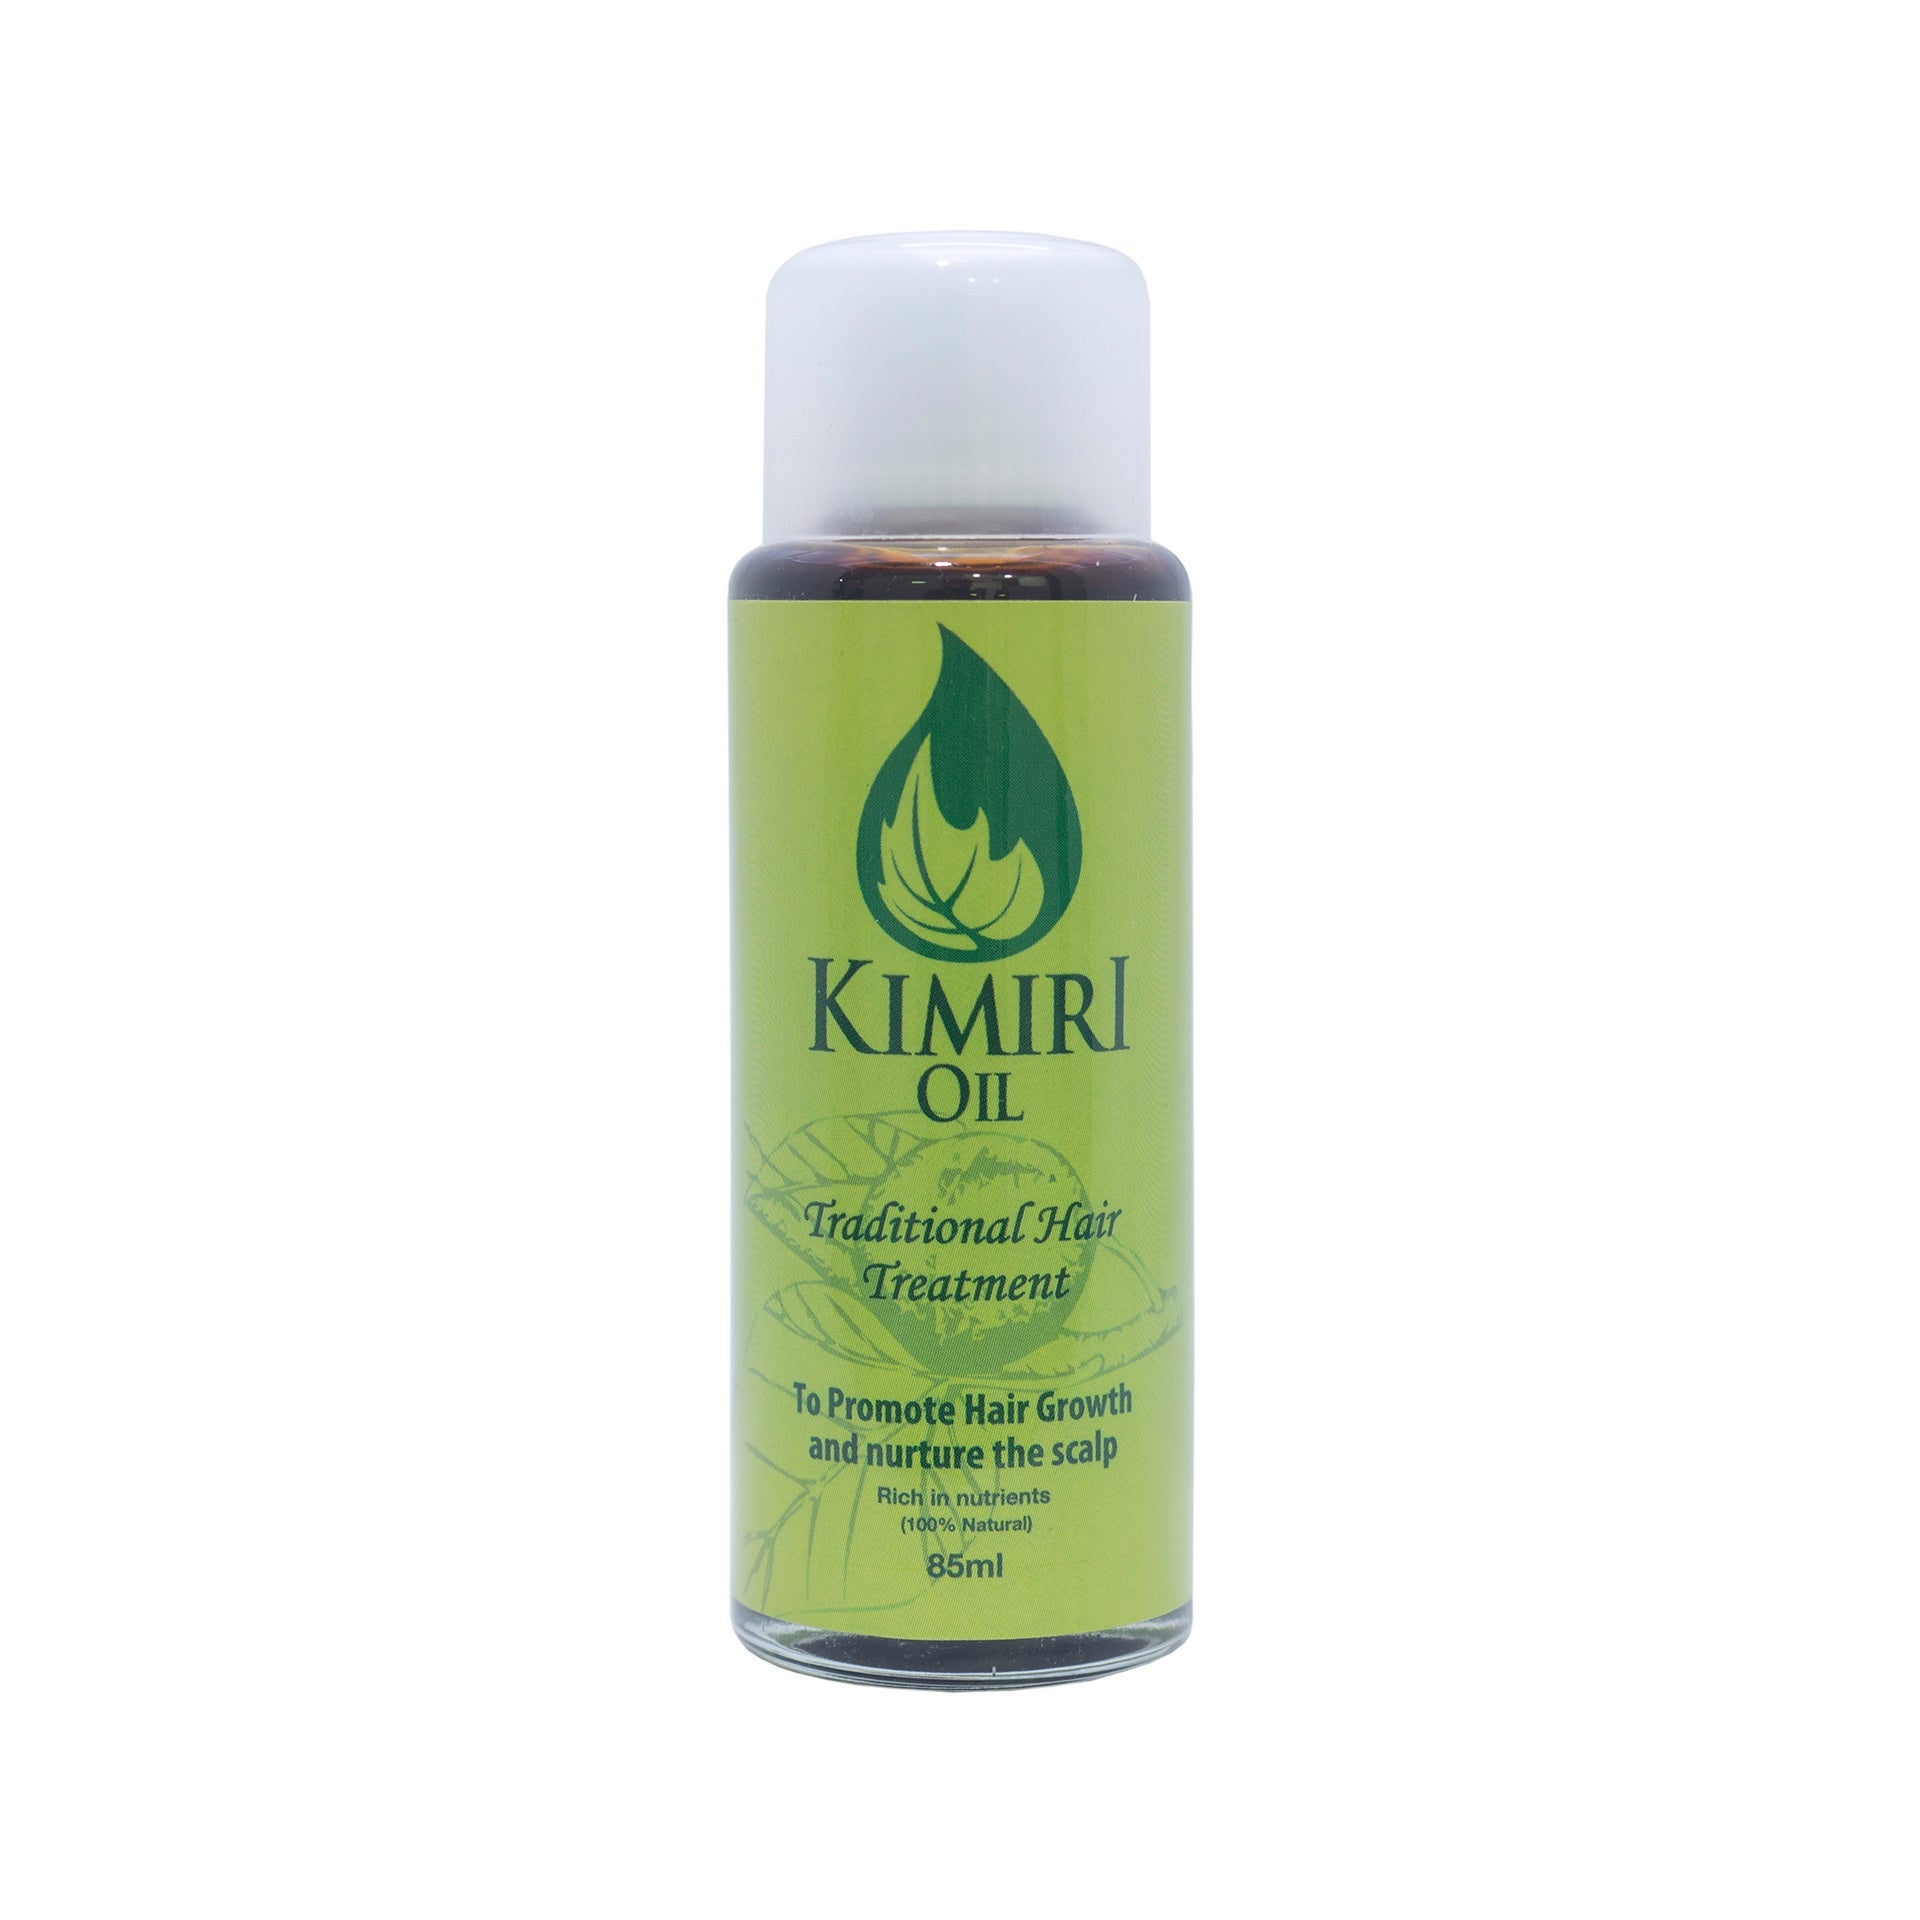 Kimiri Oil, Traditional Hair Treatment, 85 ml